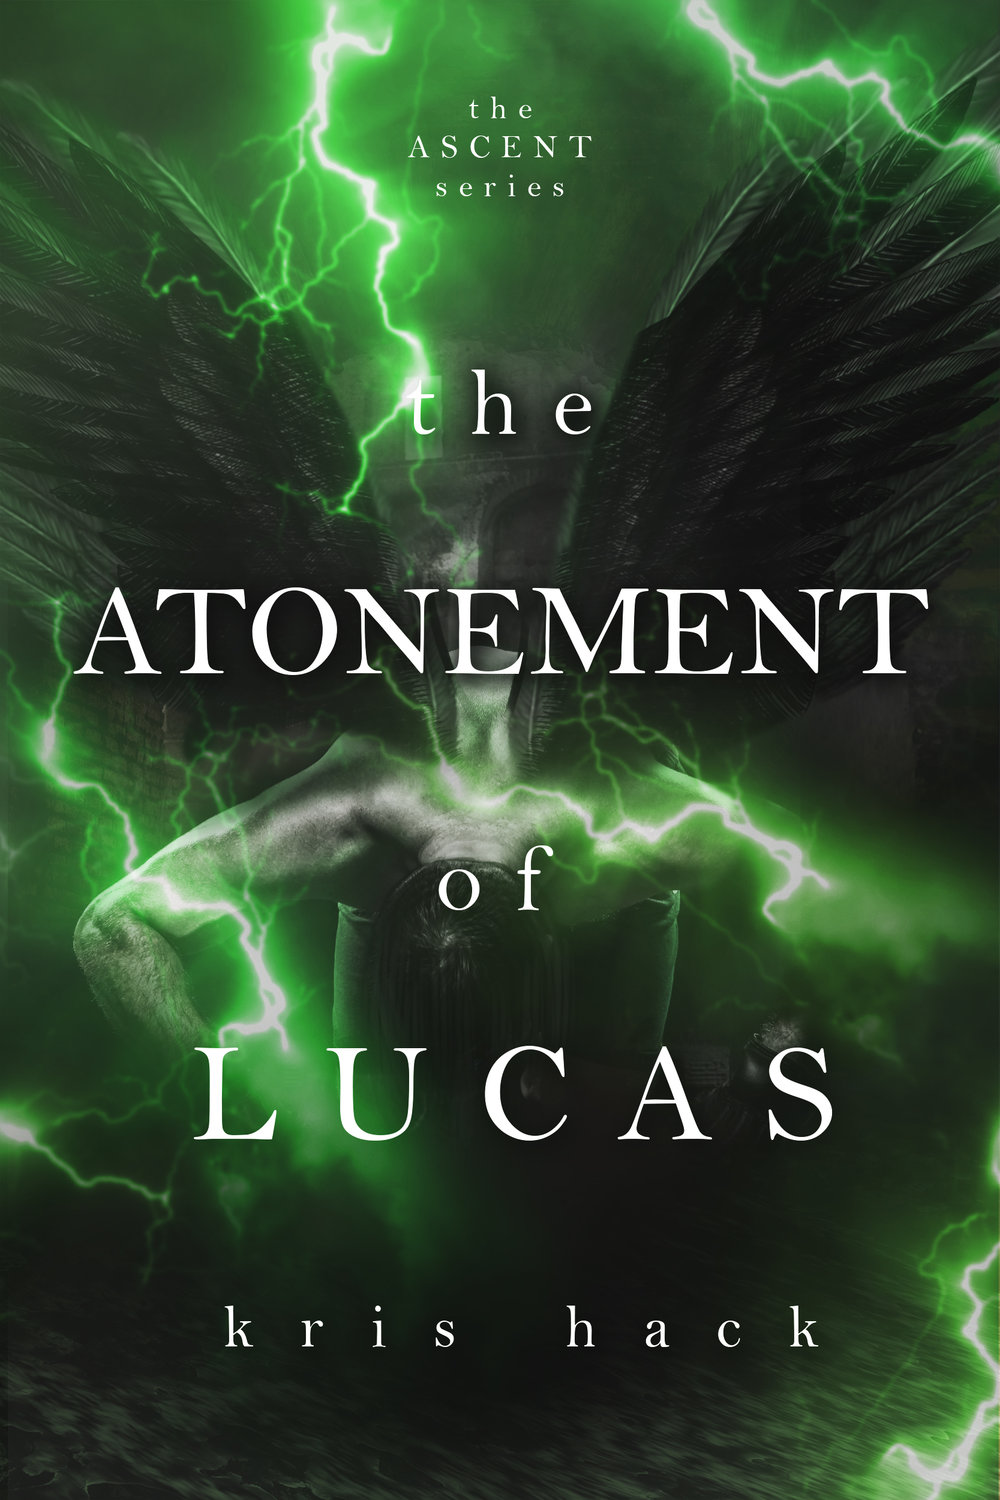 The Atonement of Lucas - THE ONLY PERSON I'VE EVER LOVED was taken from me during the first reaping several months ago. I don't know how, or why, but something changed inside me, turning me into something I never knew existed. Sasha came into my life and saved me, teaching me to use the powers I'd known so little about. But saving me wasn't her end goal. She handed me over to the Fallen like I meant nothing to her, and now, revenge is all I see. Destroying those who screwed me fills my every thought but there's one thing standing in my way. He came along and became the one Fallen I don't think I can live without.TROUBLE SHOULD HAVE BEEN HER NAME. When I found her planting a bomb on the compound, I threw her in a cell, leaving her the option to cooperate or starve. I should kill her and put an end to the suffering she's determined impose on all of us, but there's just something about her that keeps holding me back. The friction between us is explosive. I can't resist her when she gets that look in her eye, and she damn well knows it.